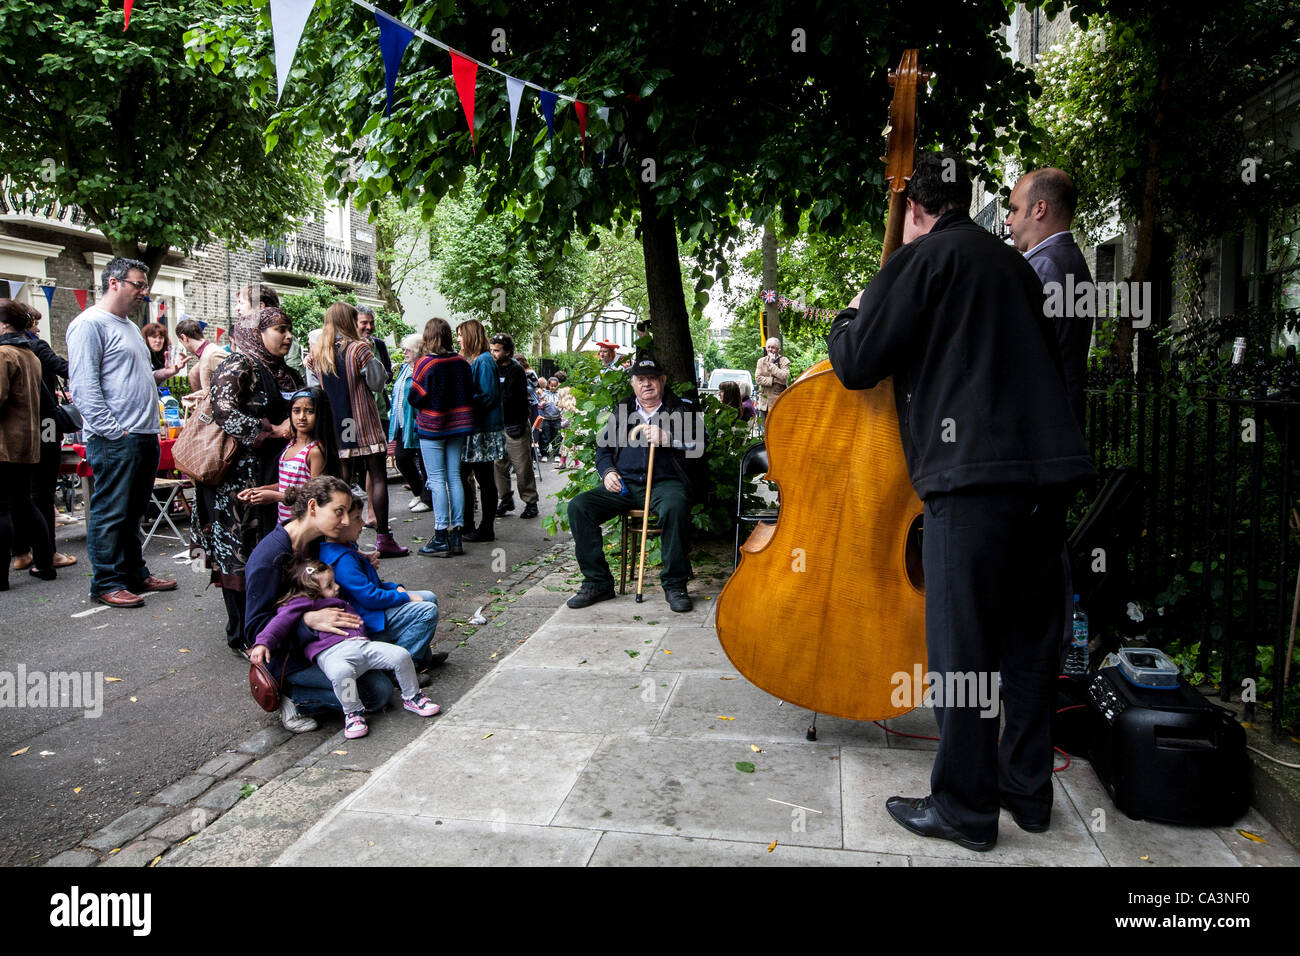 London, United Kingdom, 02/06/2012. People of all nationalities in  Kentish Town enjoying the Queen's Diamond - Stock Image